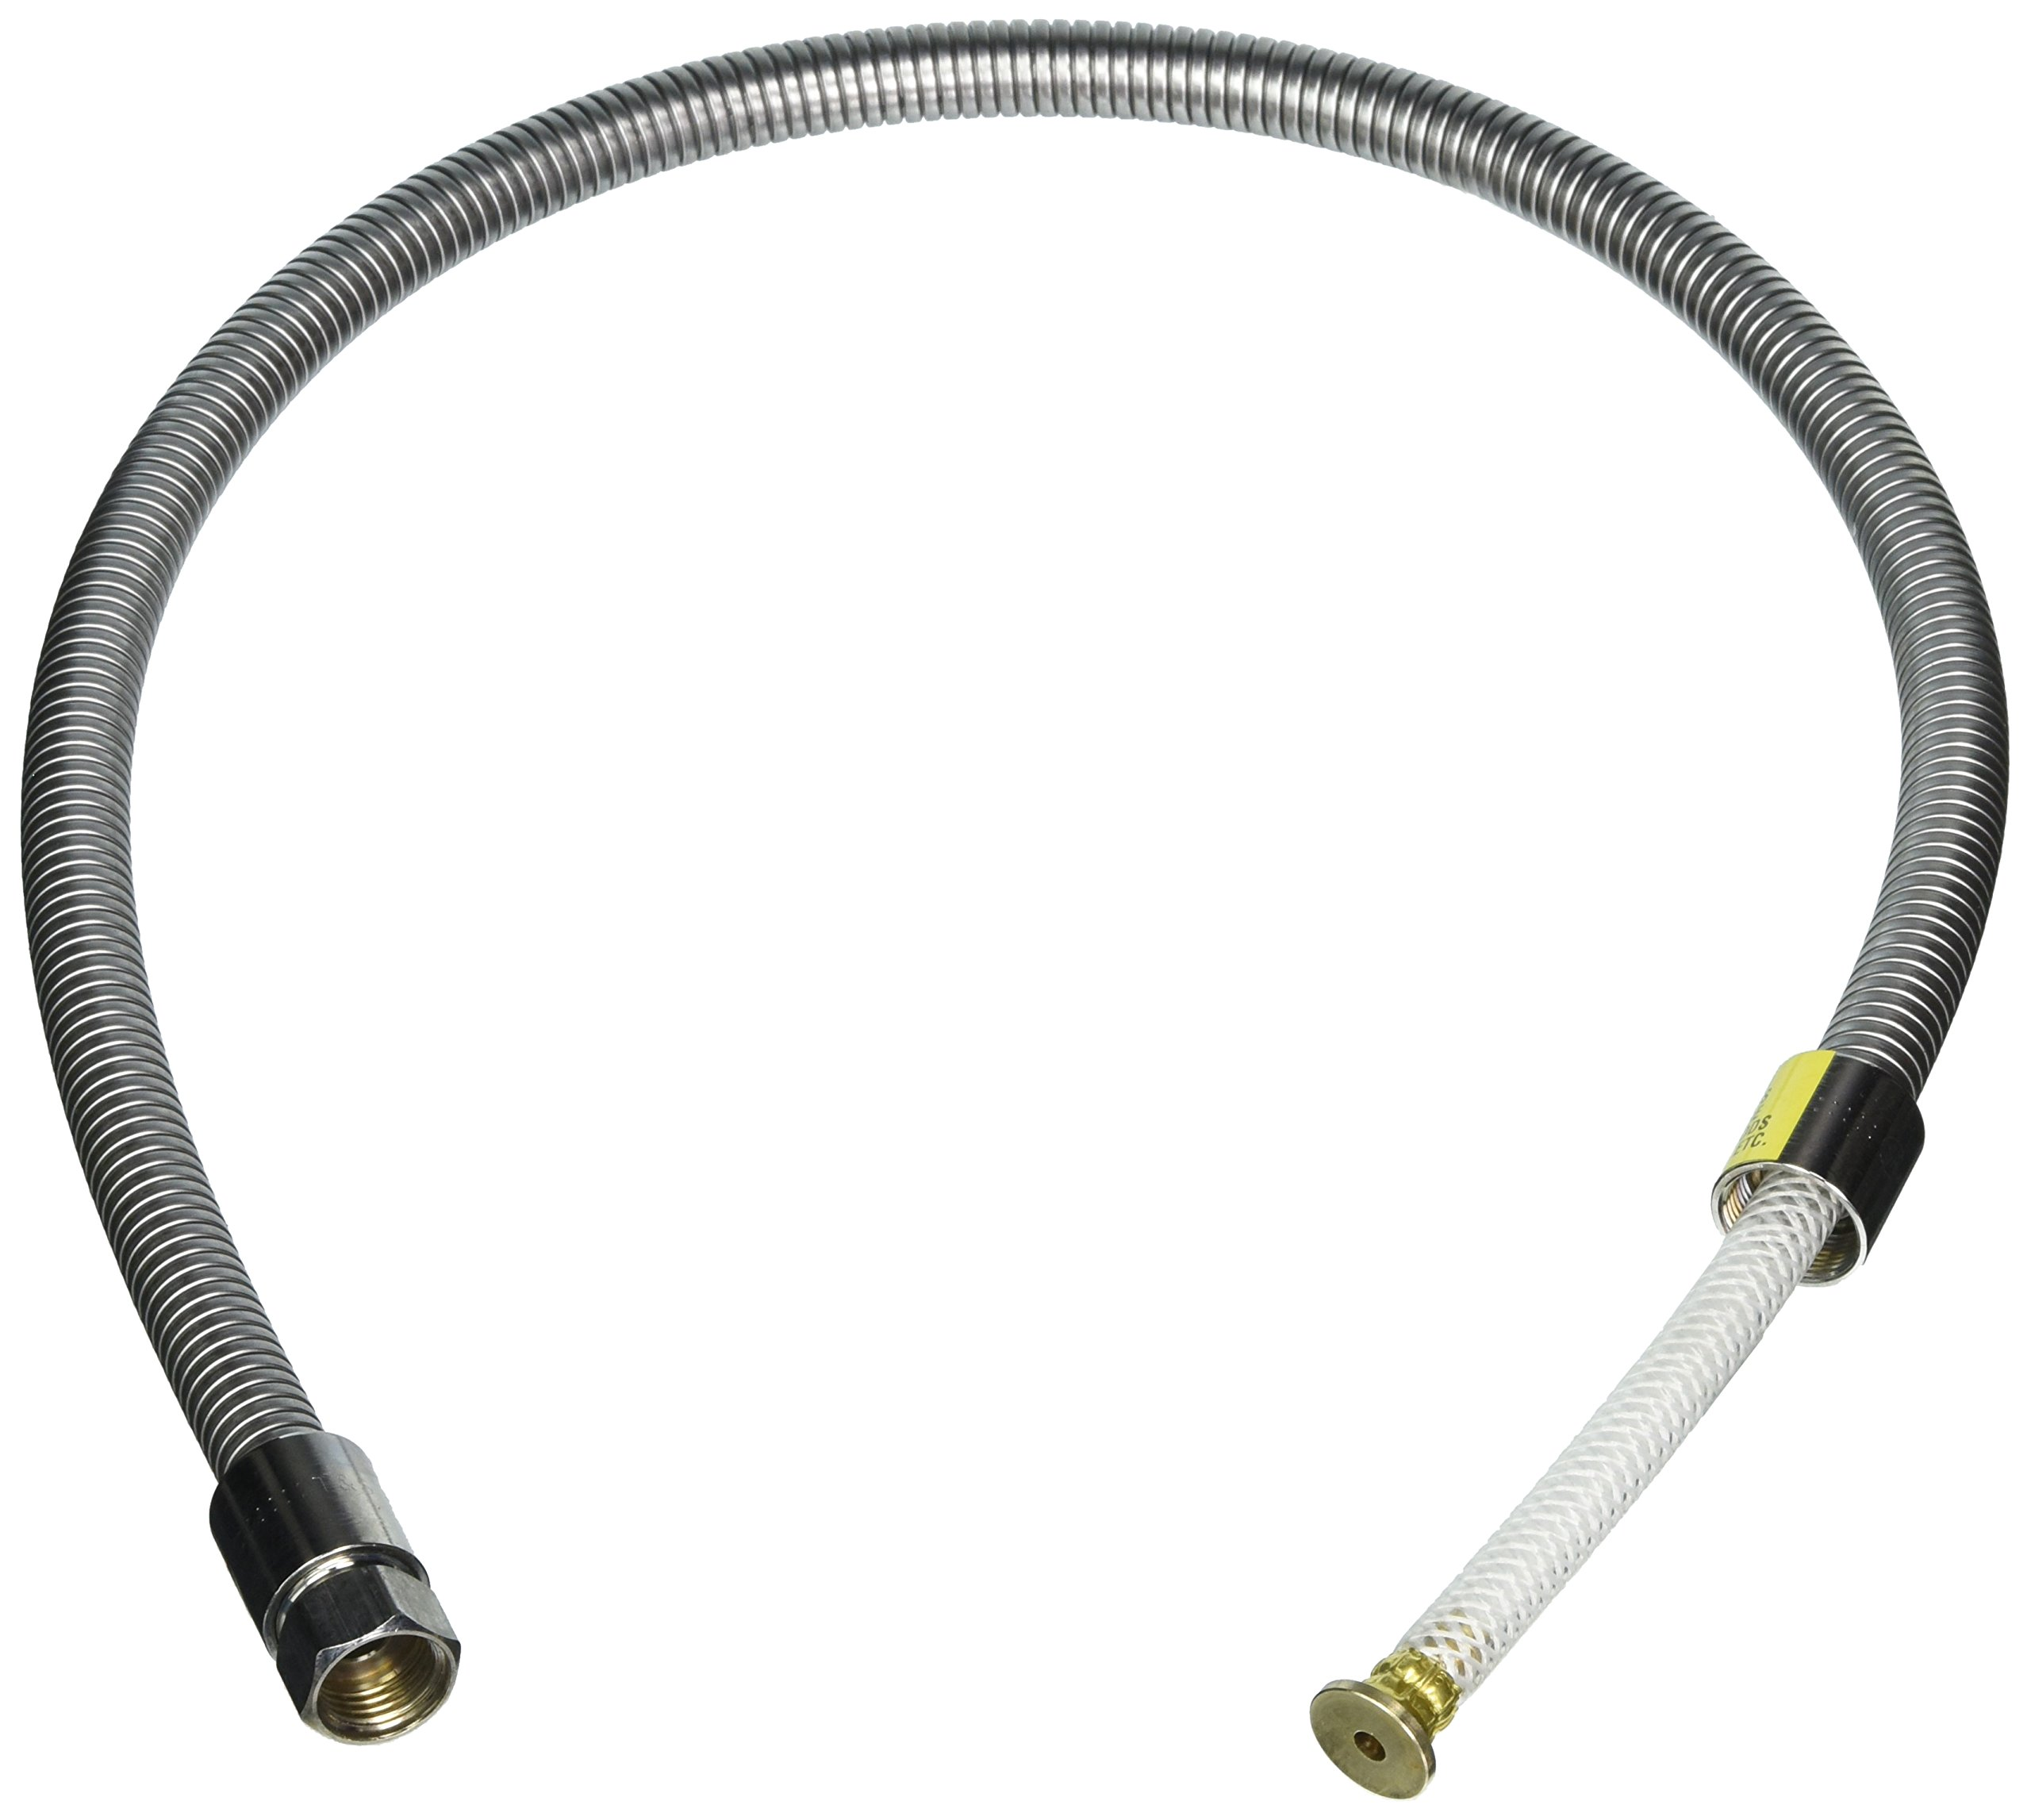 T&S Brass B-0044-H2A Flexible Hose, 44-Inch, Stainless Steel